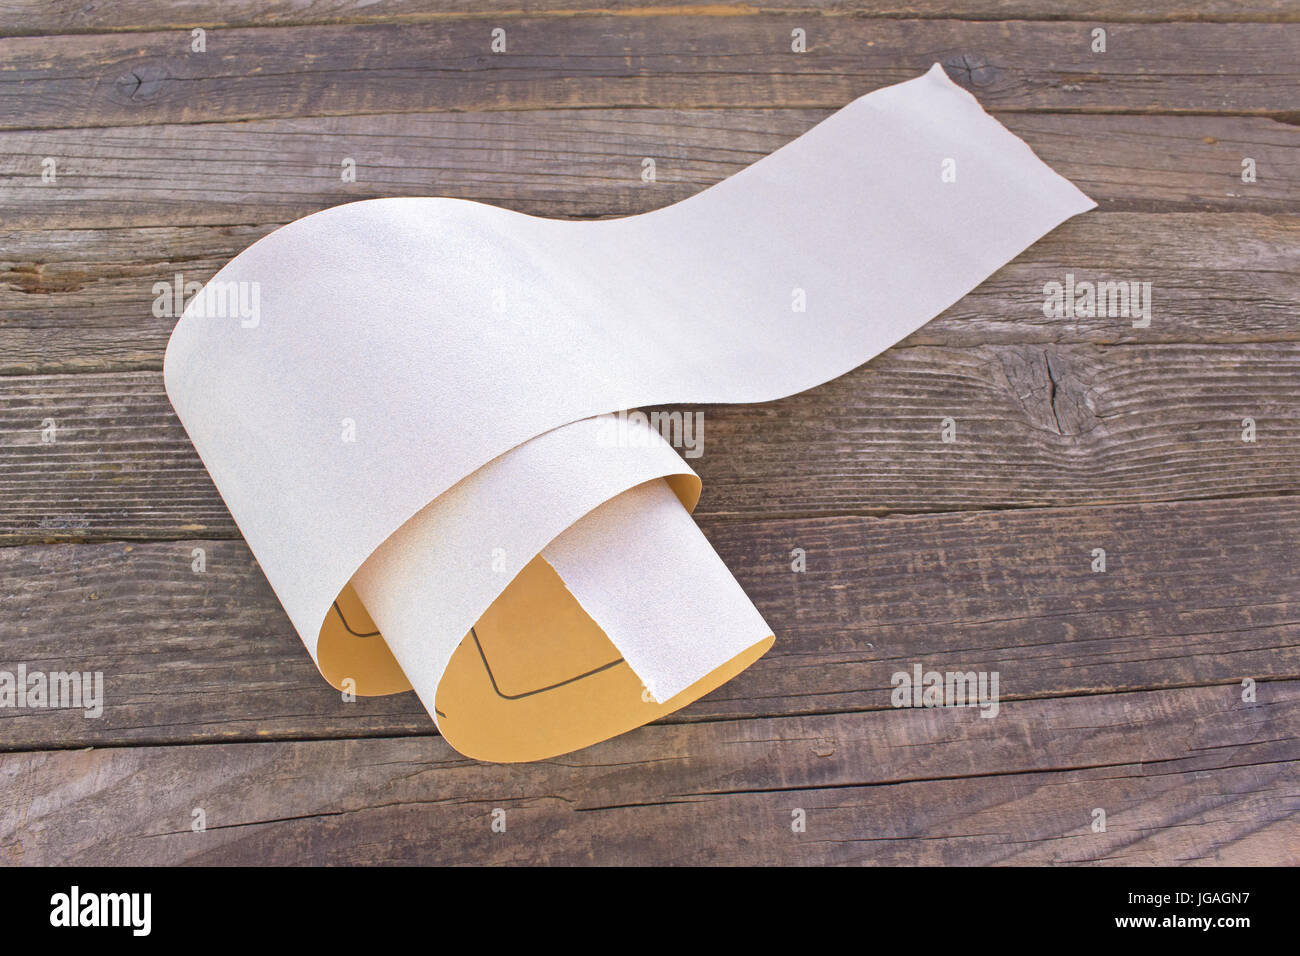 Emery paper - sandpaper on old wooden board - Stock Image